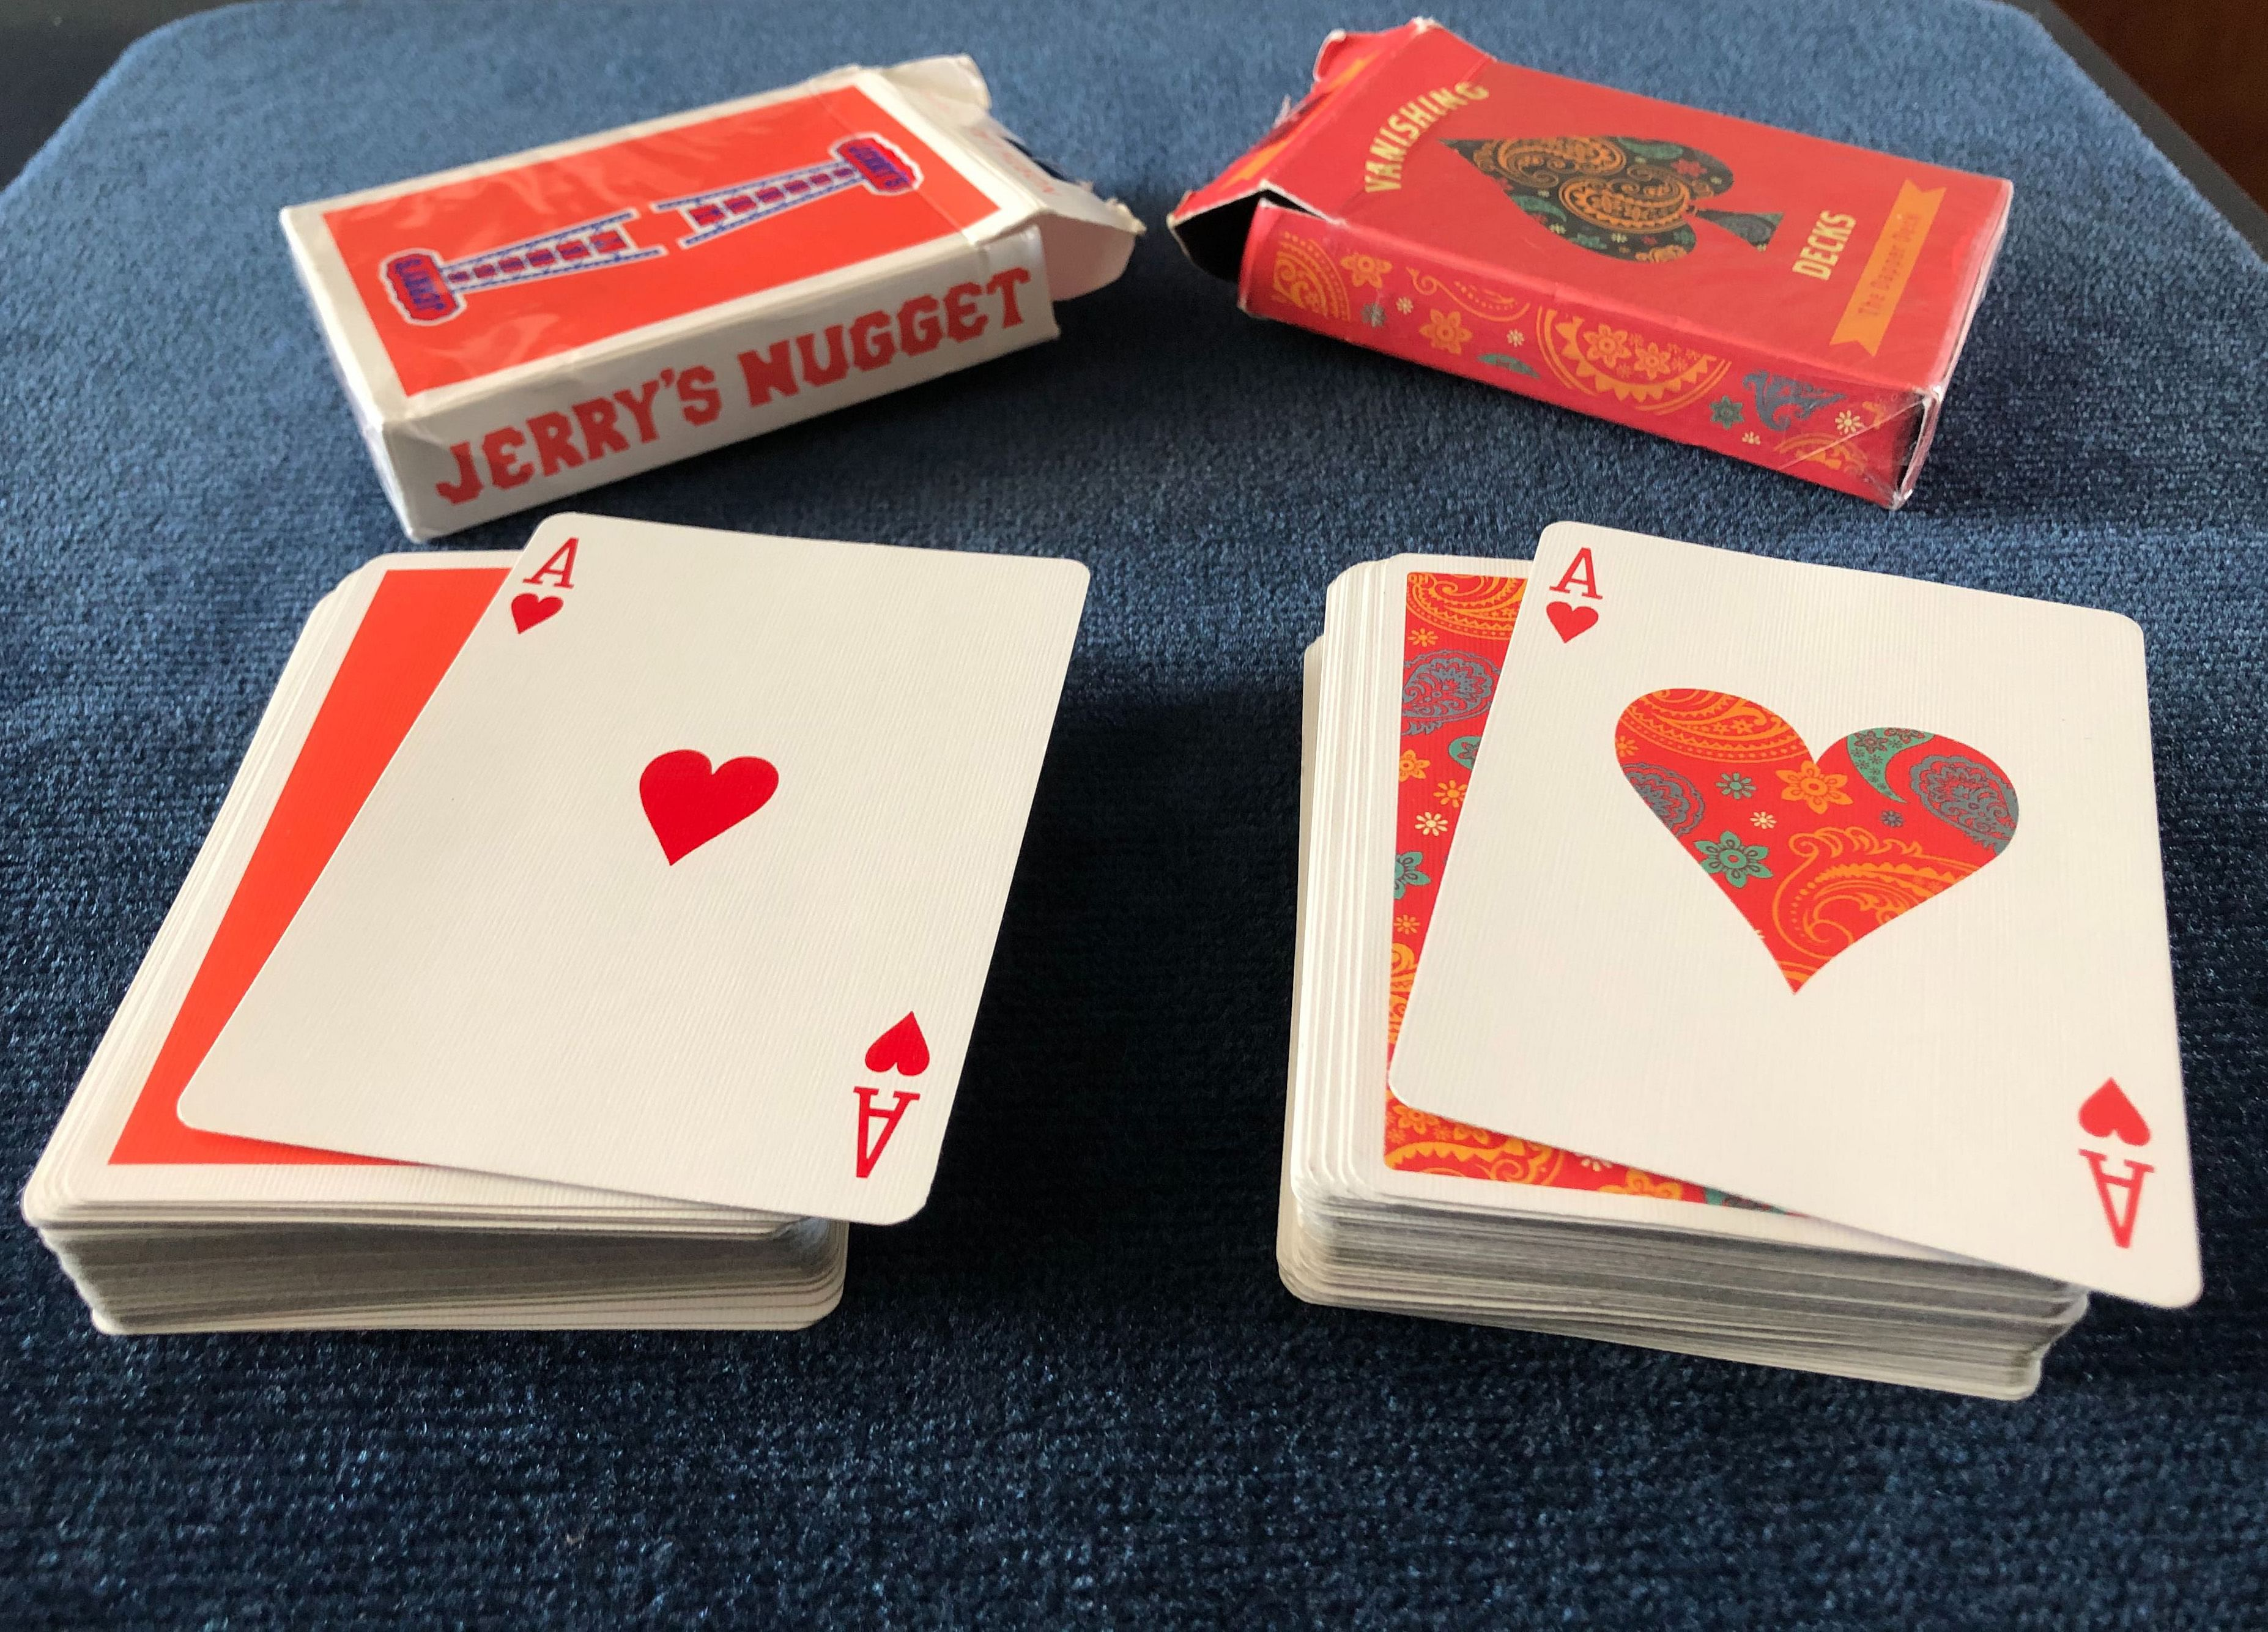 An Ace of Hearts playing card from the Dapper Deck by Vanishing Inc and an Ace of Hearts from Jerry's Nugget Playing Cards perfectly match after a performance of the beginner magic trick Do As I Do.